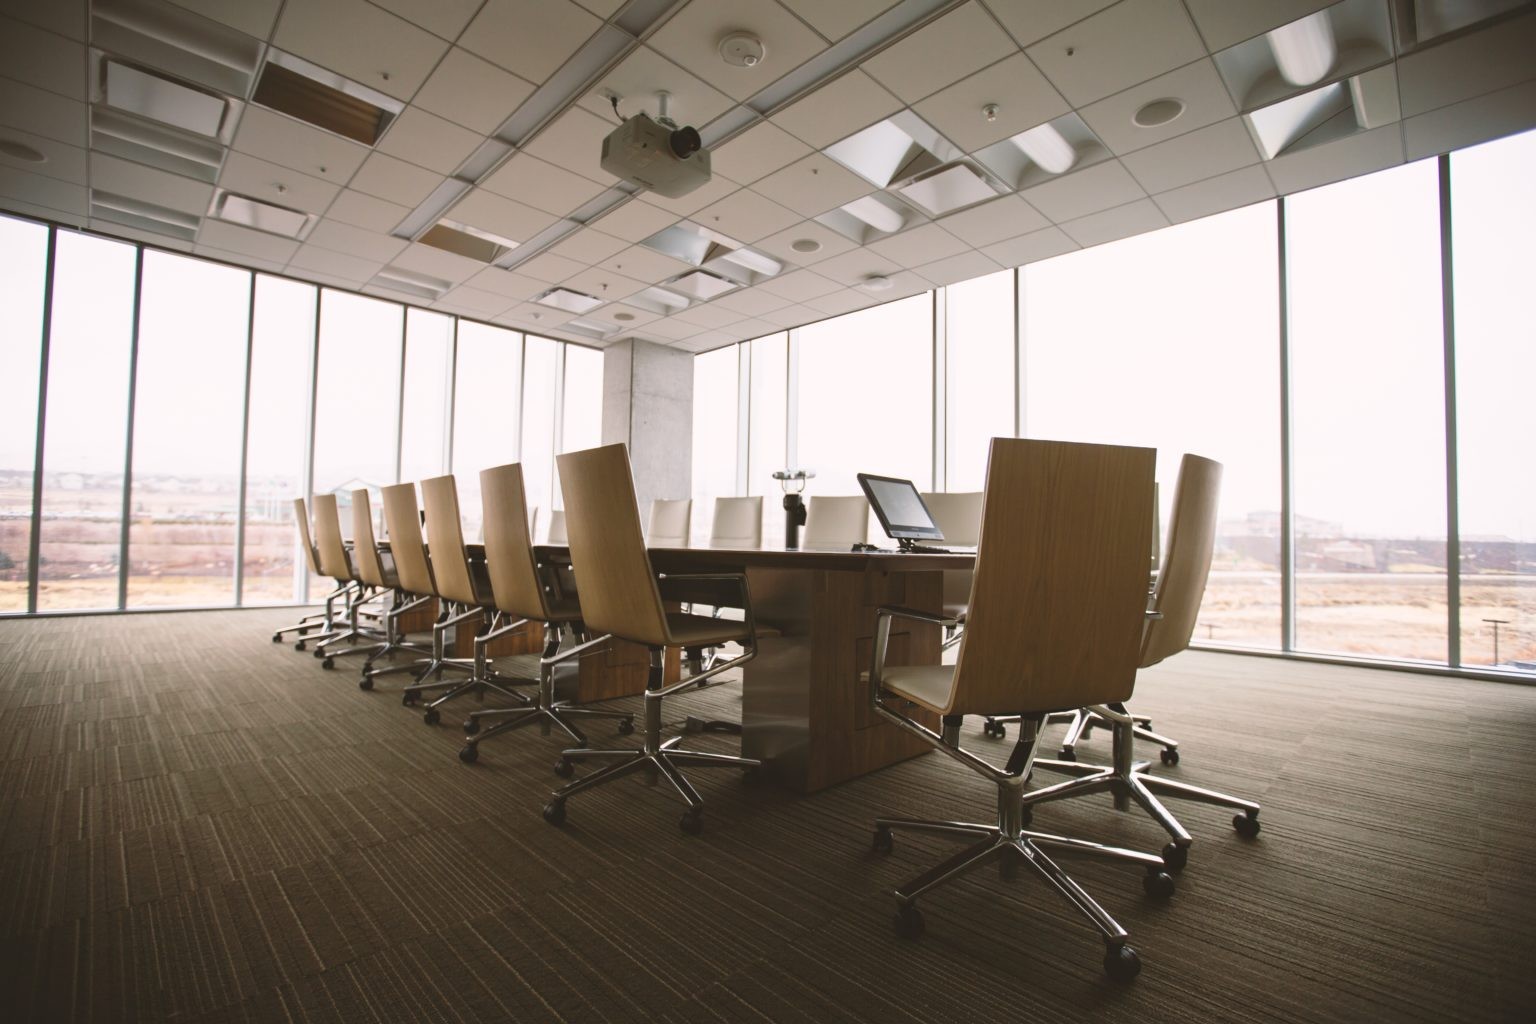 Chairs in a Meeting Room, and yet there is a sense of an Underlying Message...